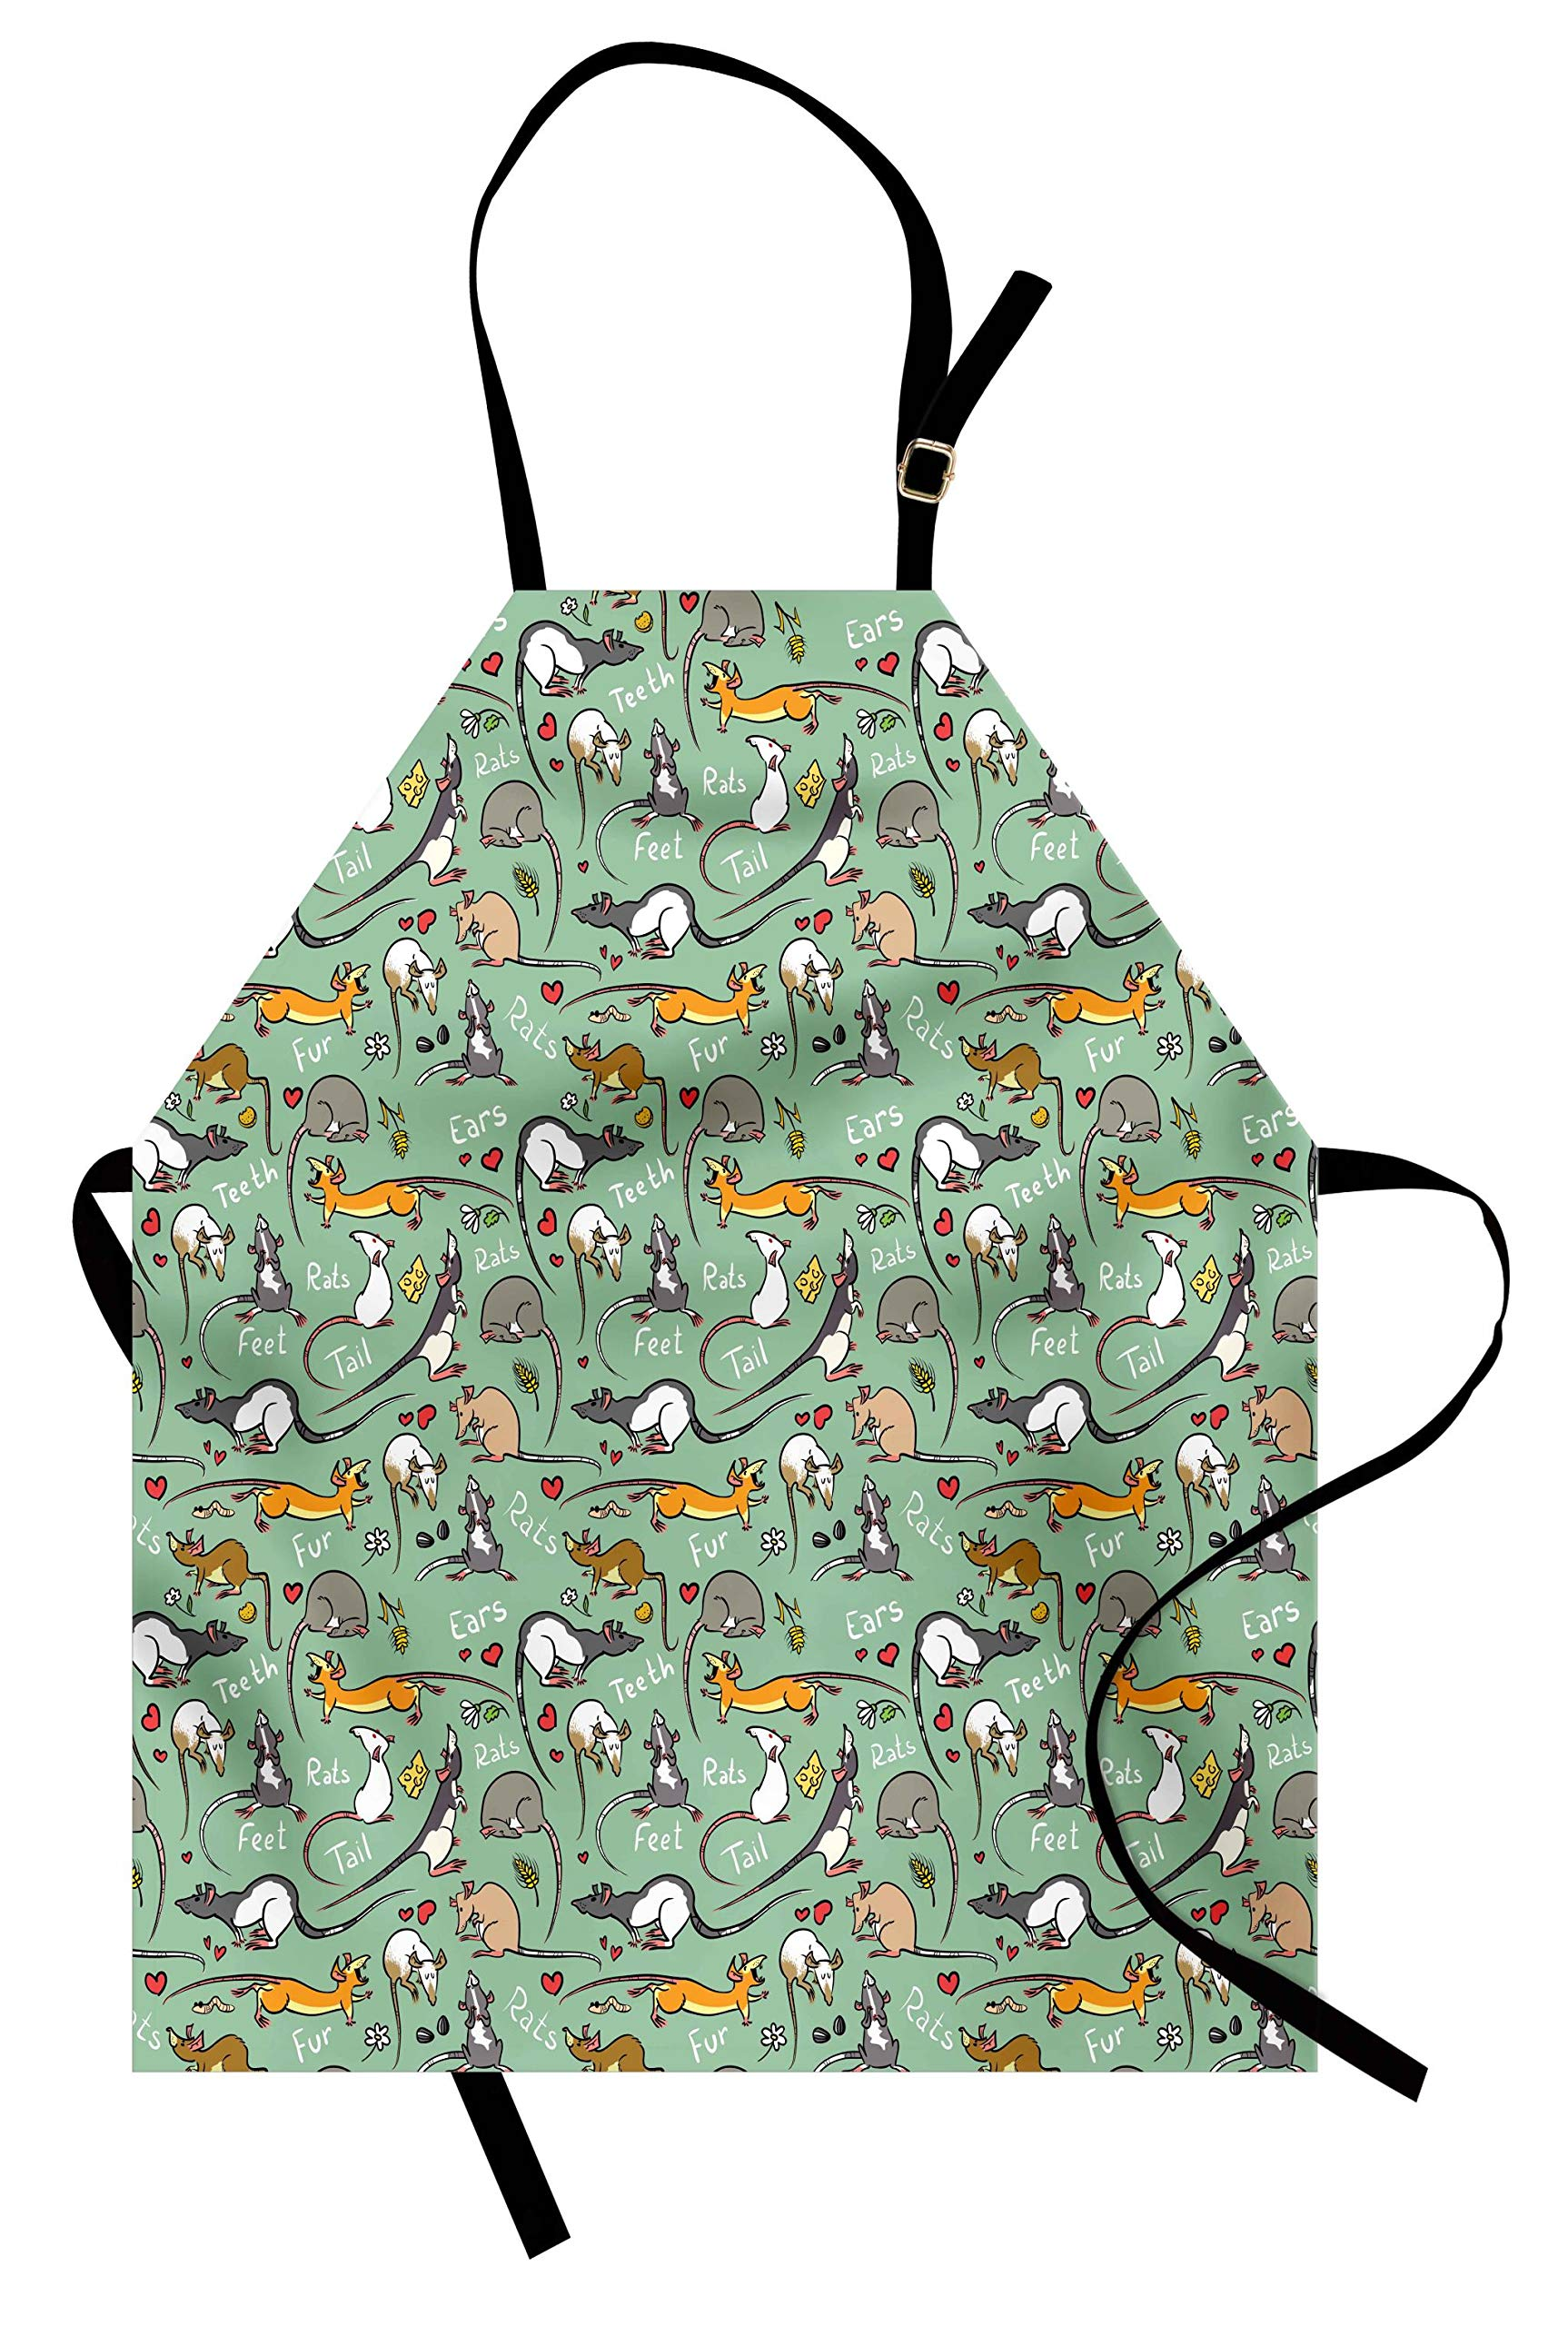 Lunarable Animals Apron, Cute Cartoon Rats with Hearts Tail Teeth Feet and Ears Lettering Urban Wildlife, Unisex Kitchen Bib Apron with Adjustable Neck for Cooking Baking Gardening, Multicolor